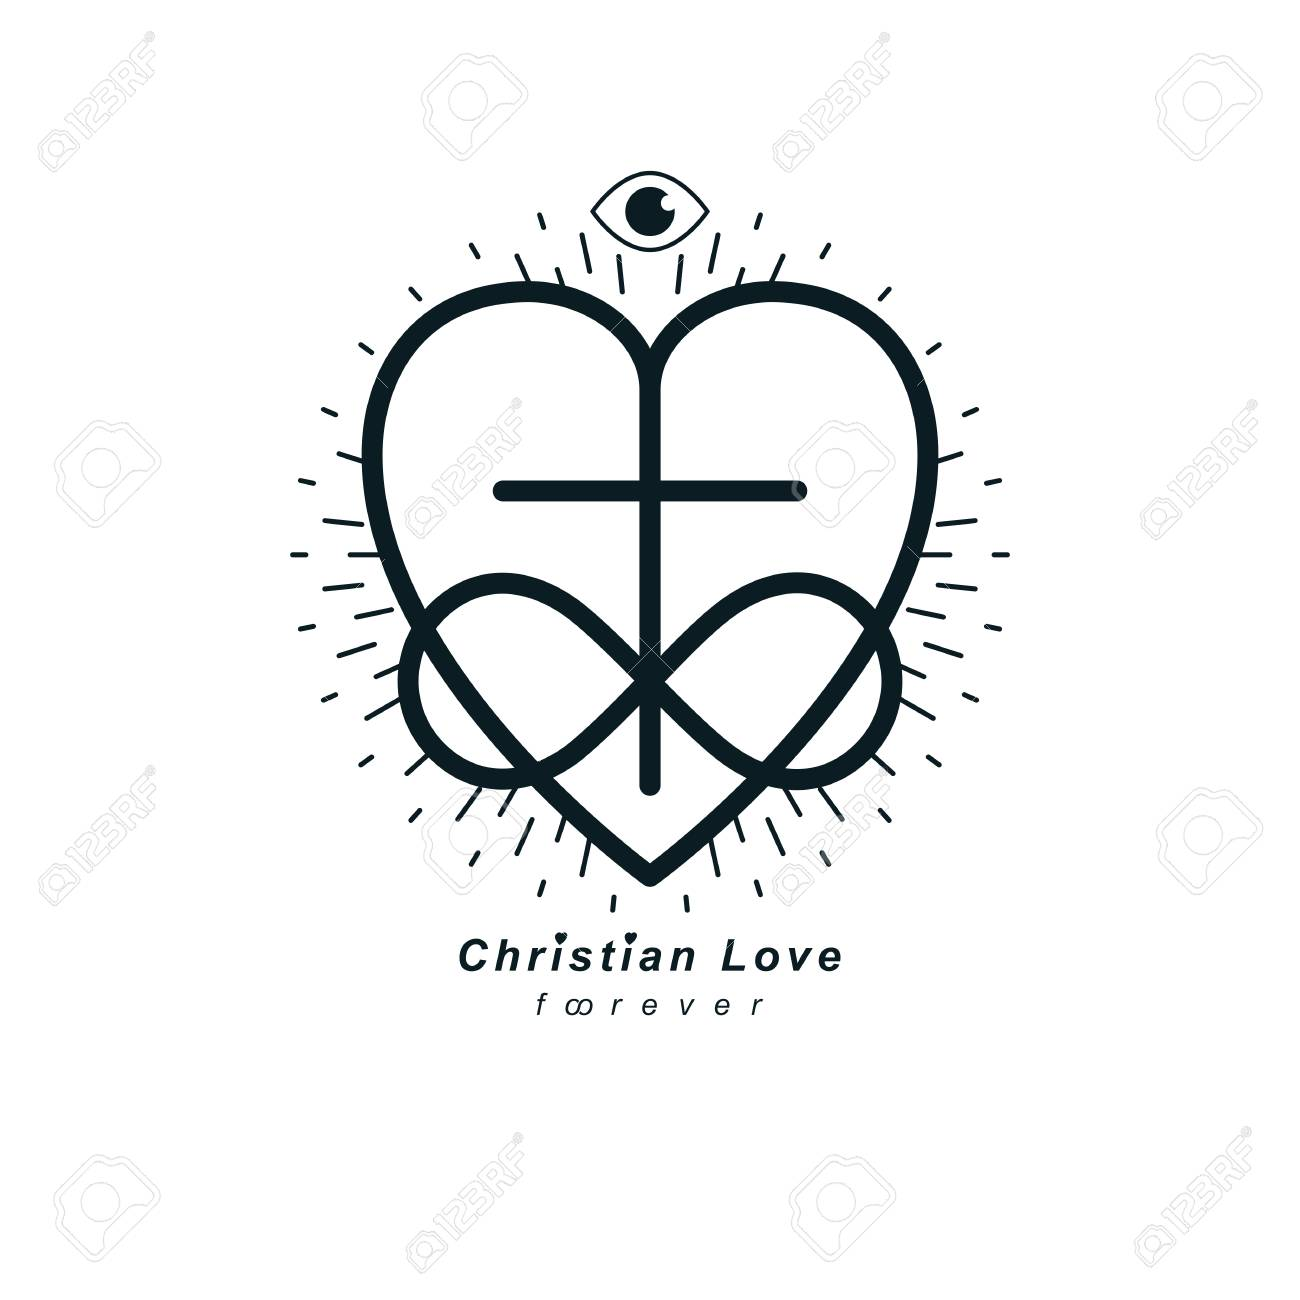 Everlasting Christian Love And True Belief In God Vector Creative